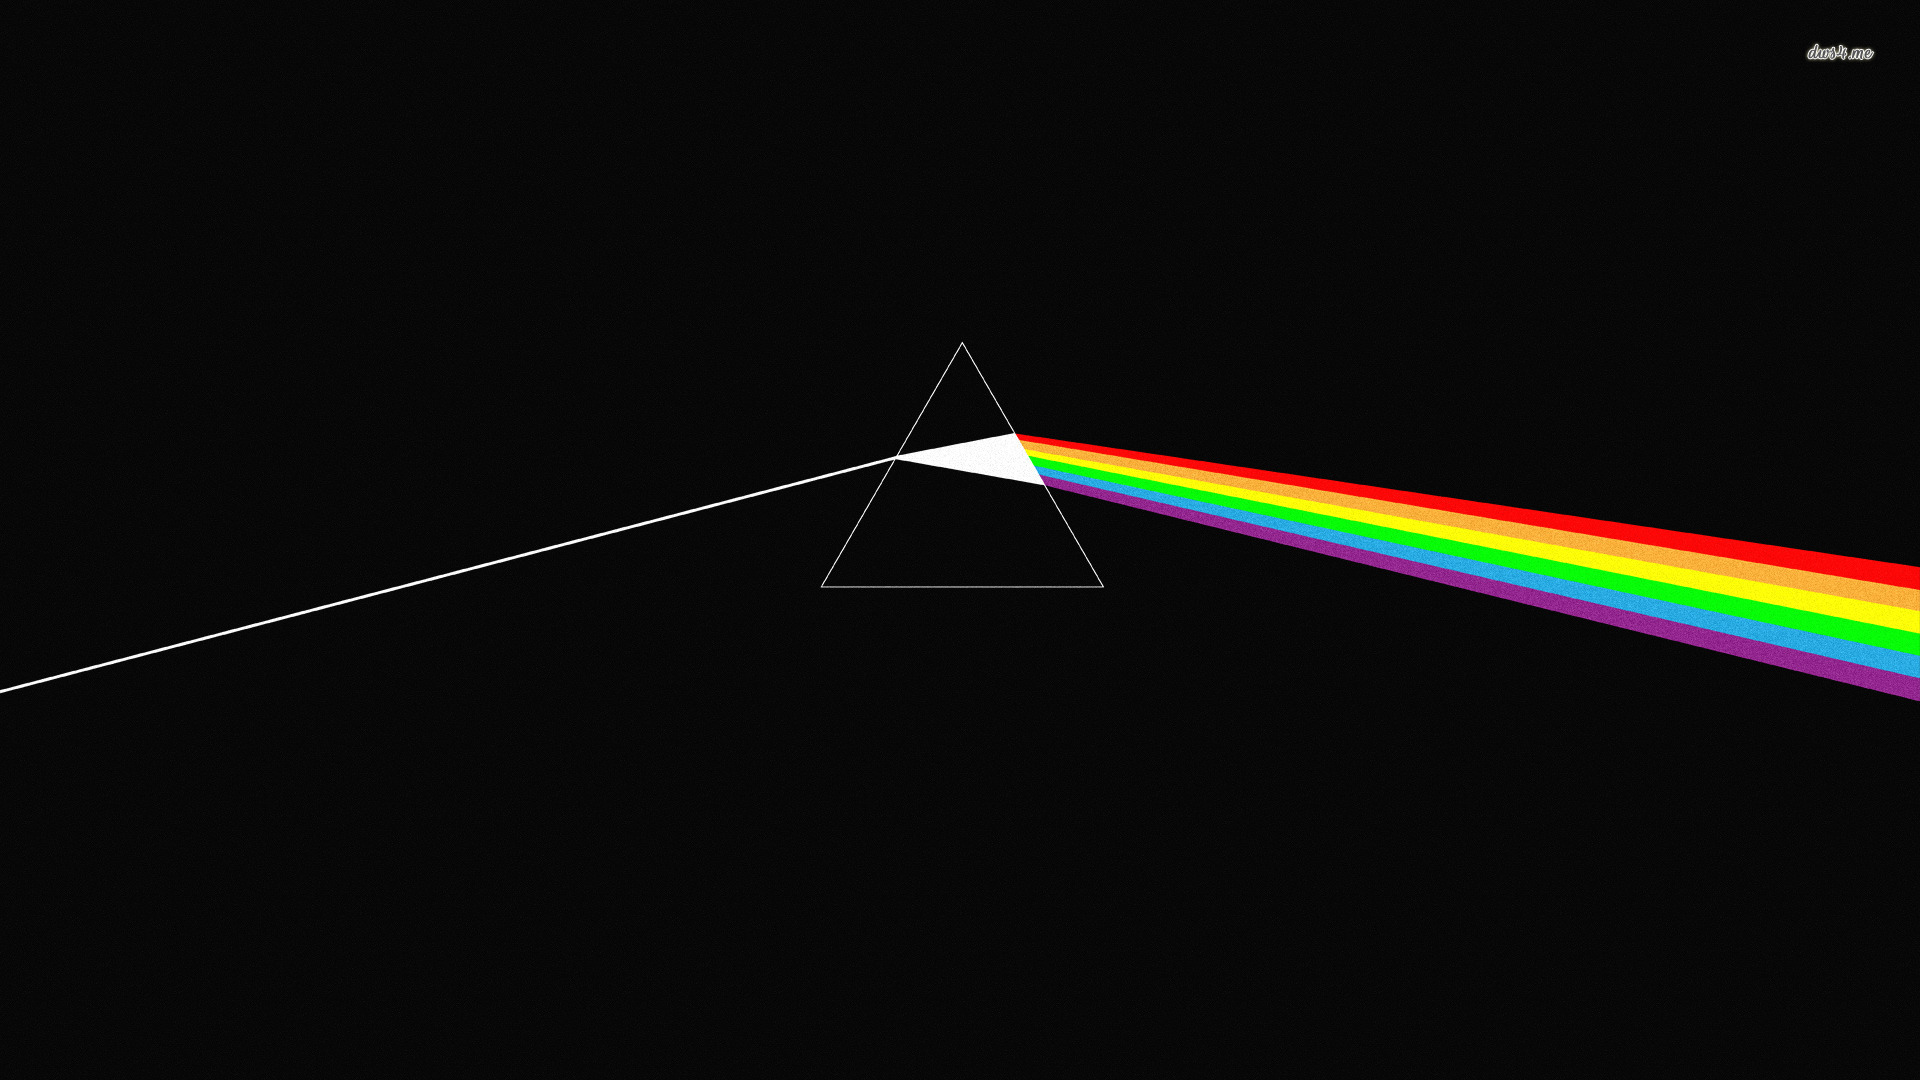 Text Pink Floyd The Dark Side Of The Moon album covers 1900x1200 1920x1080